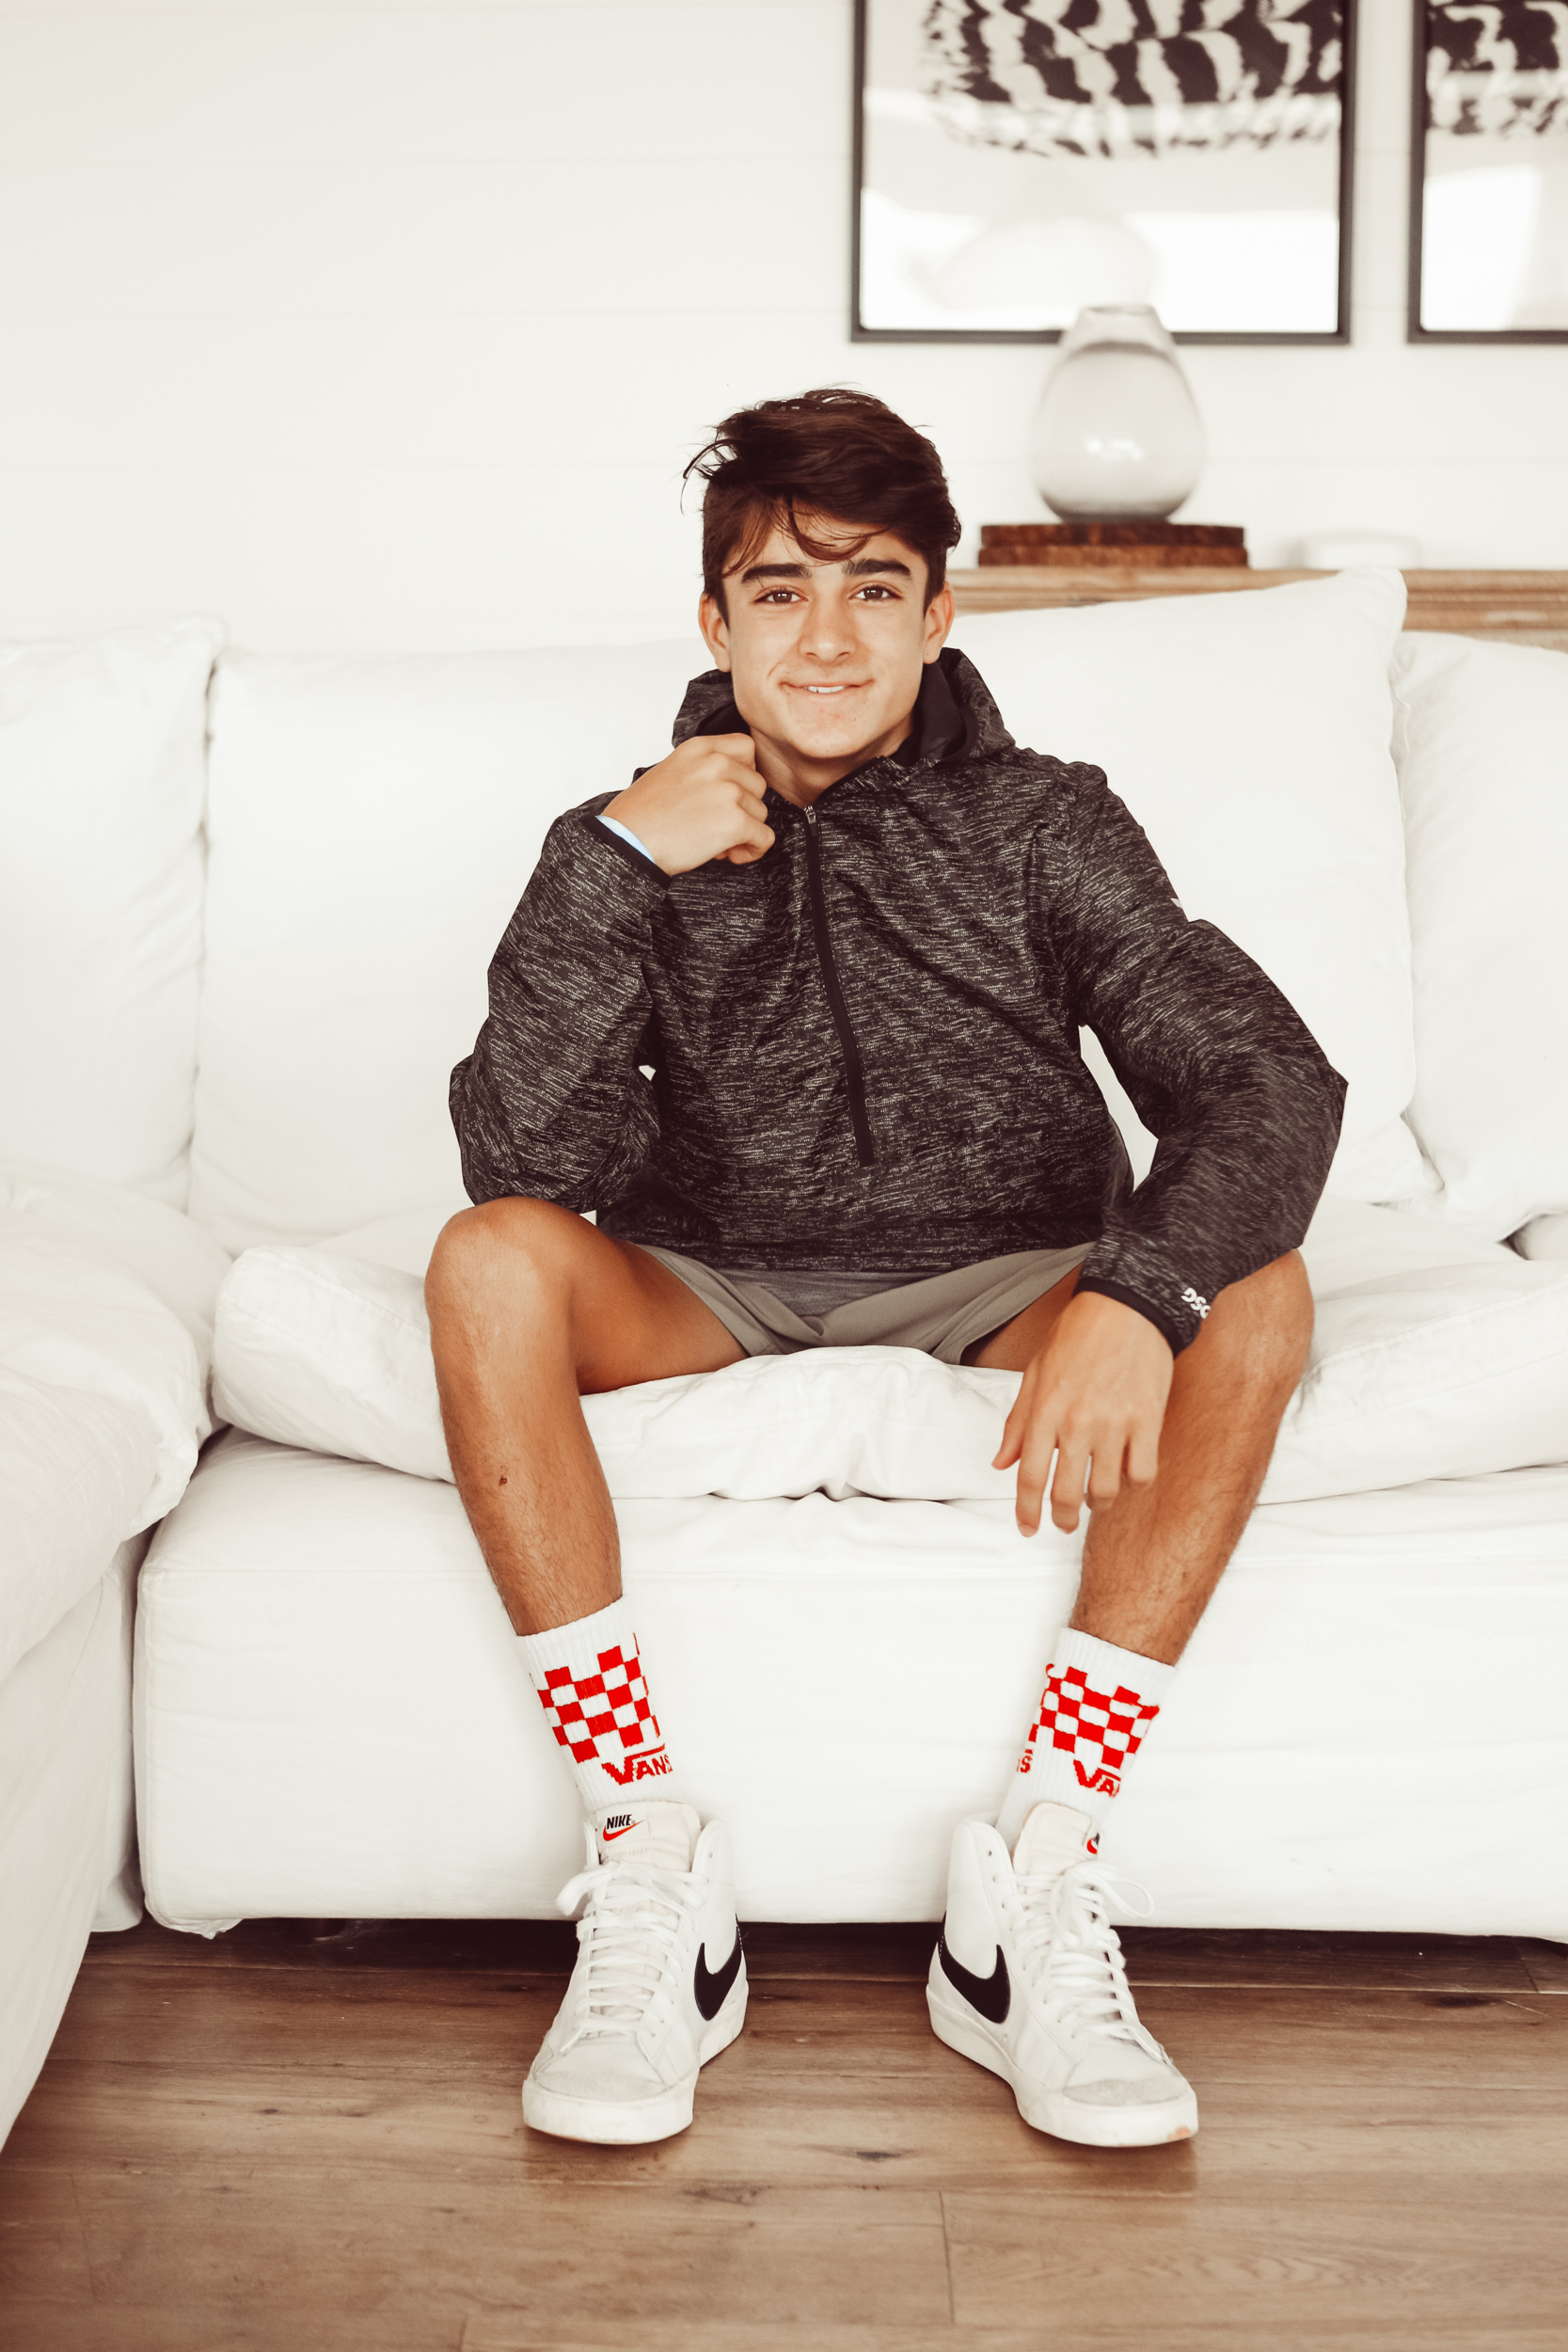 teen sitting on couch